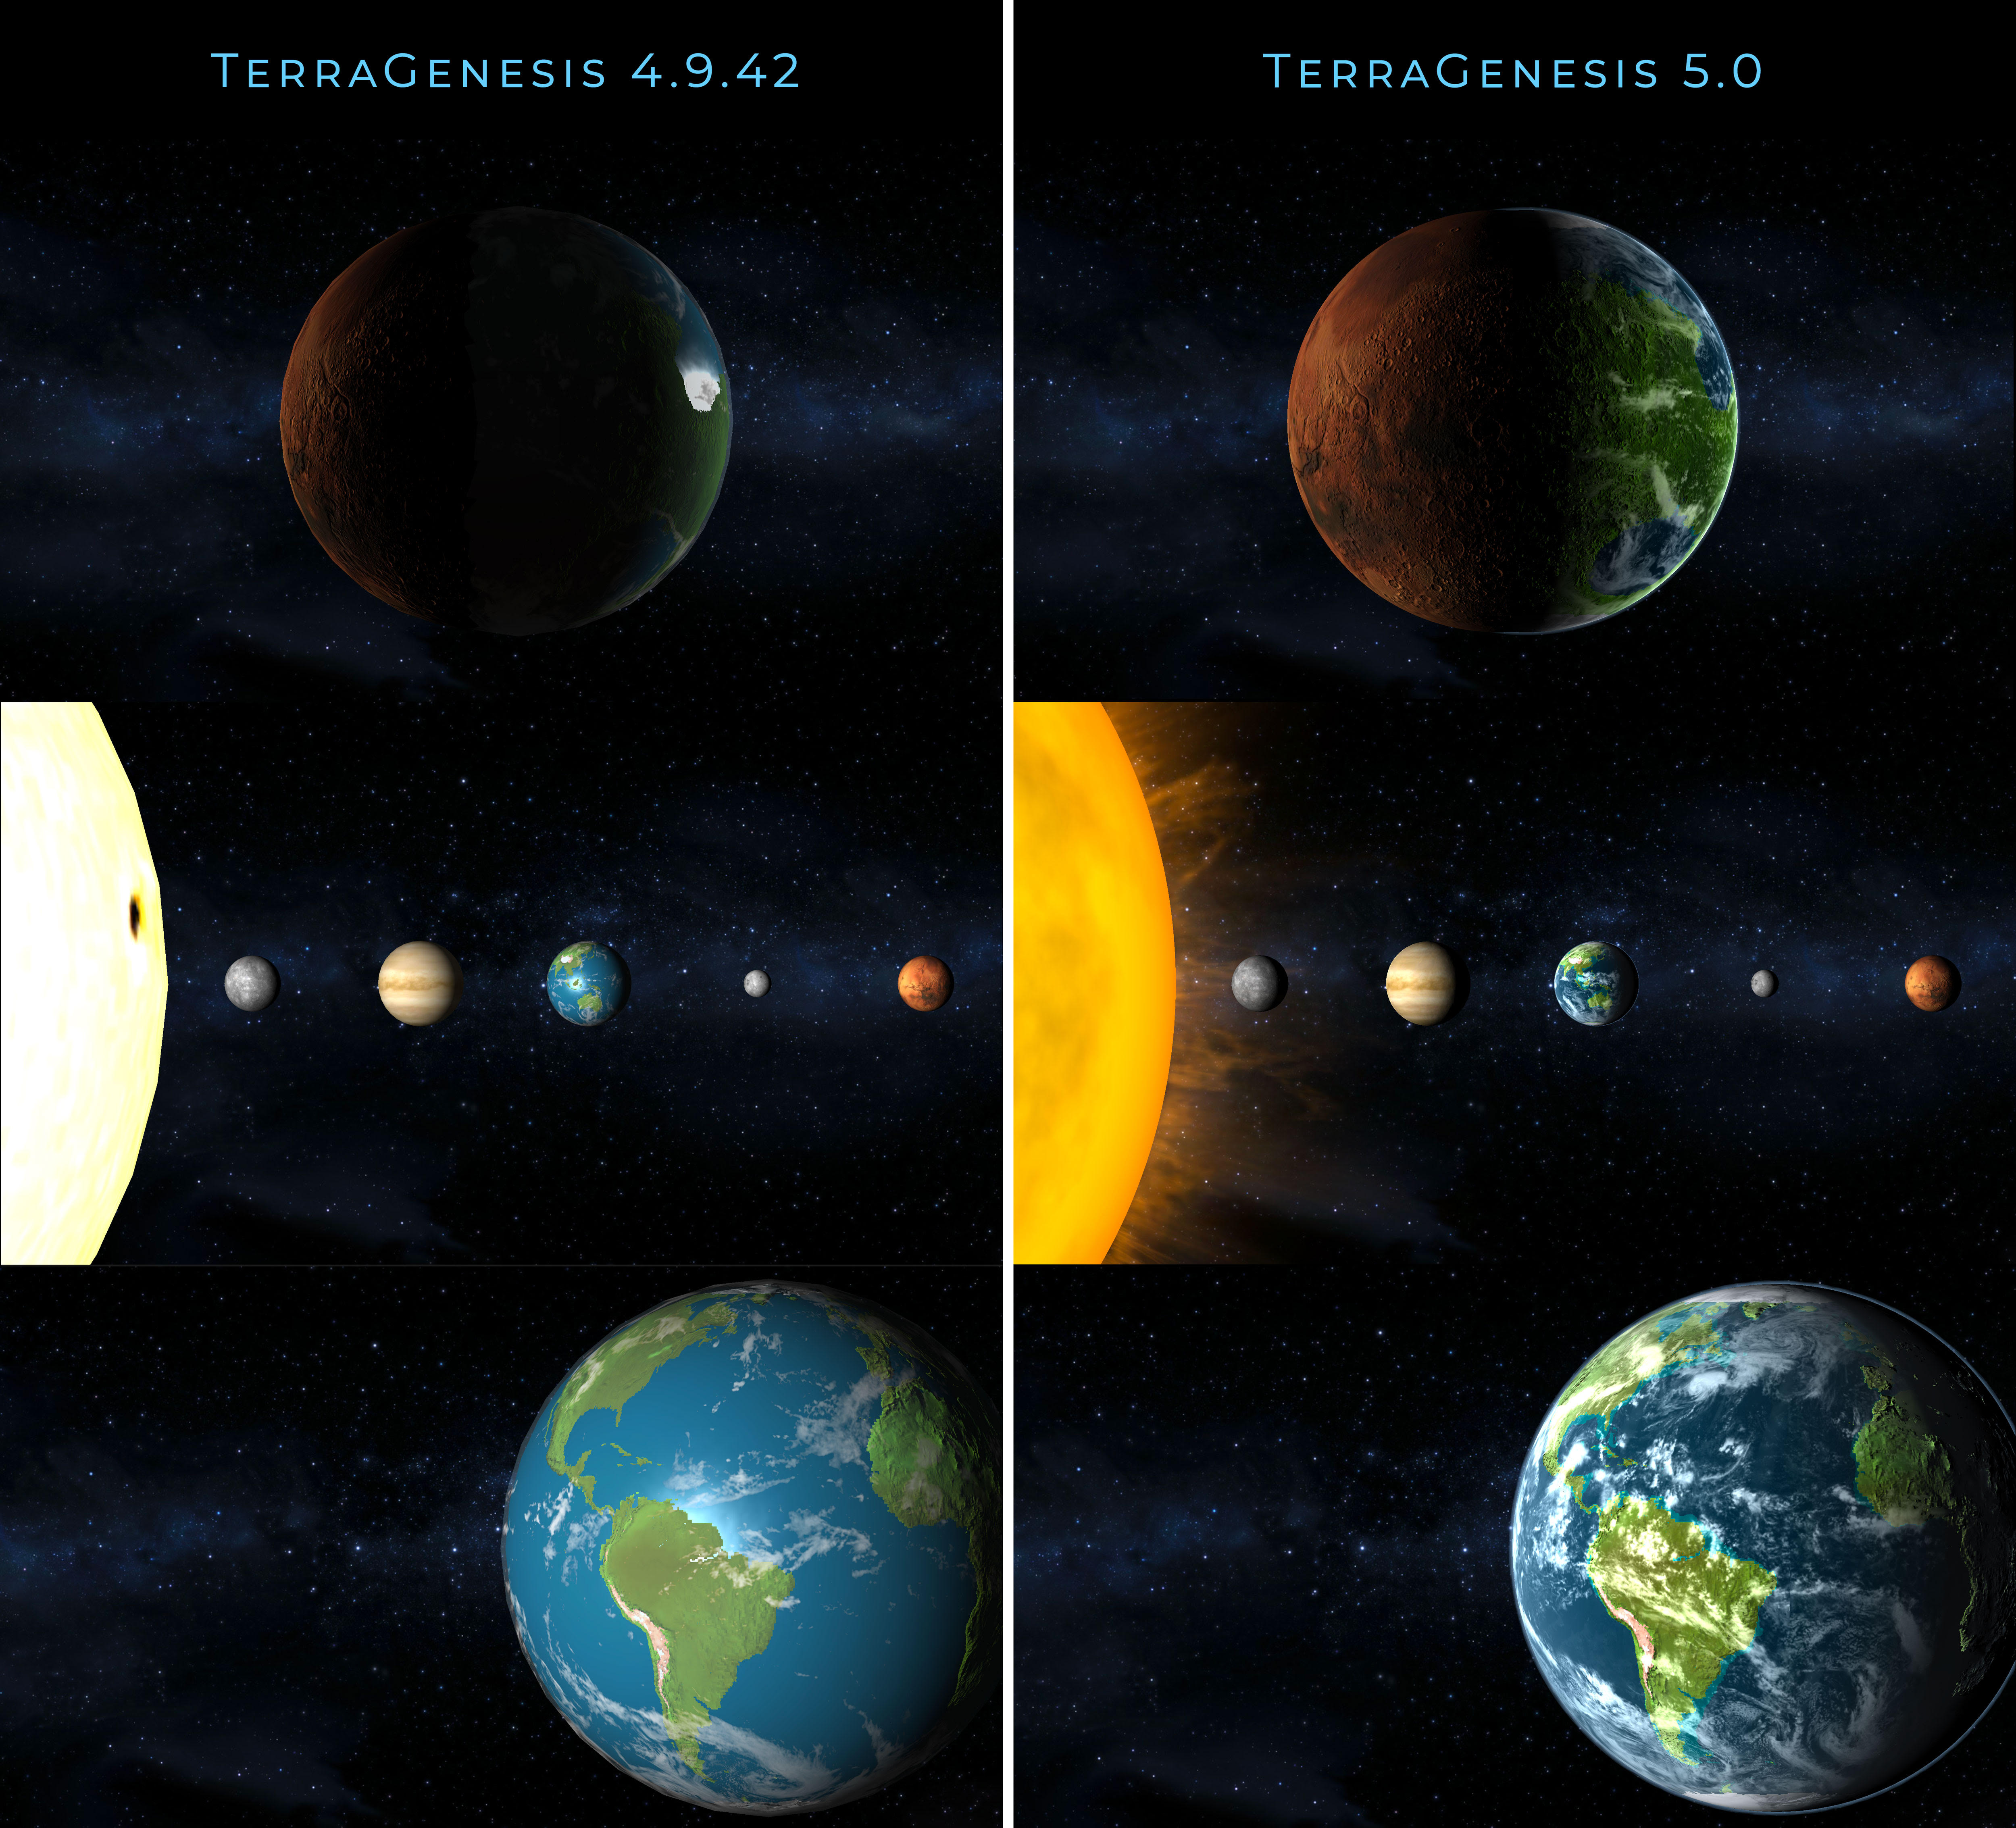 TerraGenesis comparison original vs 5 update